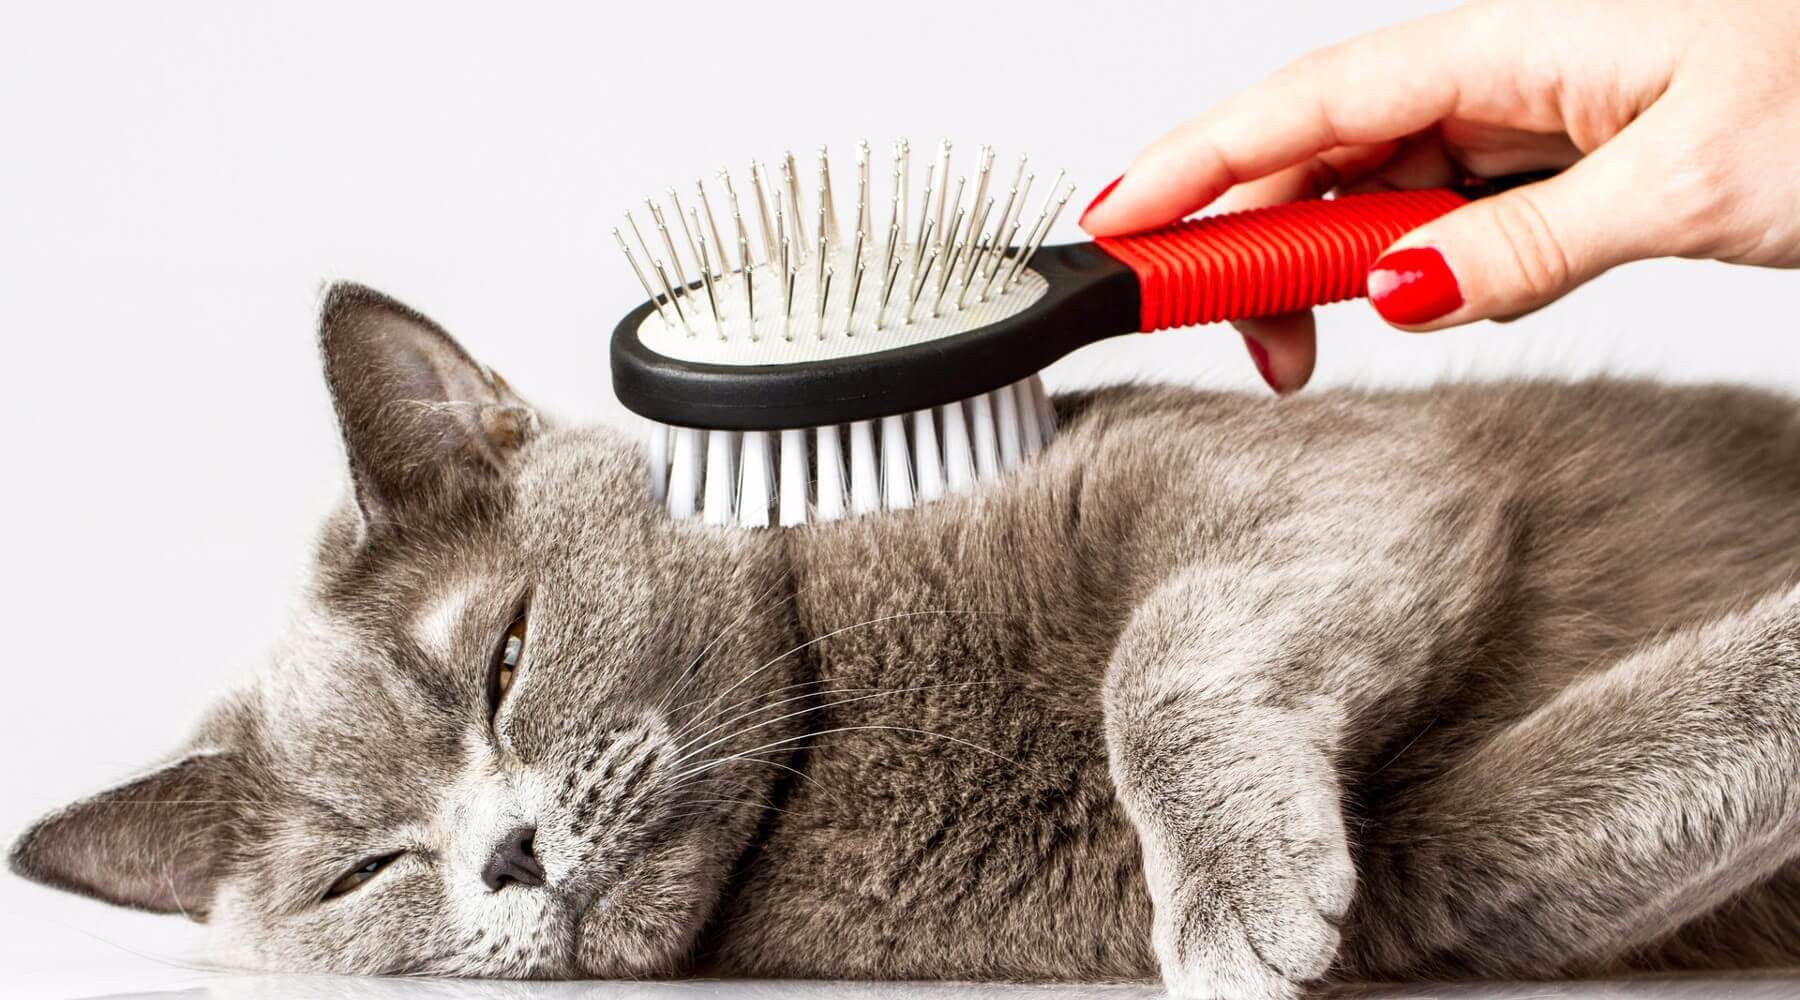 Grooming Tips for a Happy & Healthy Cat